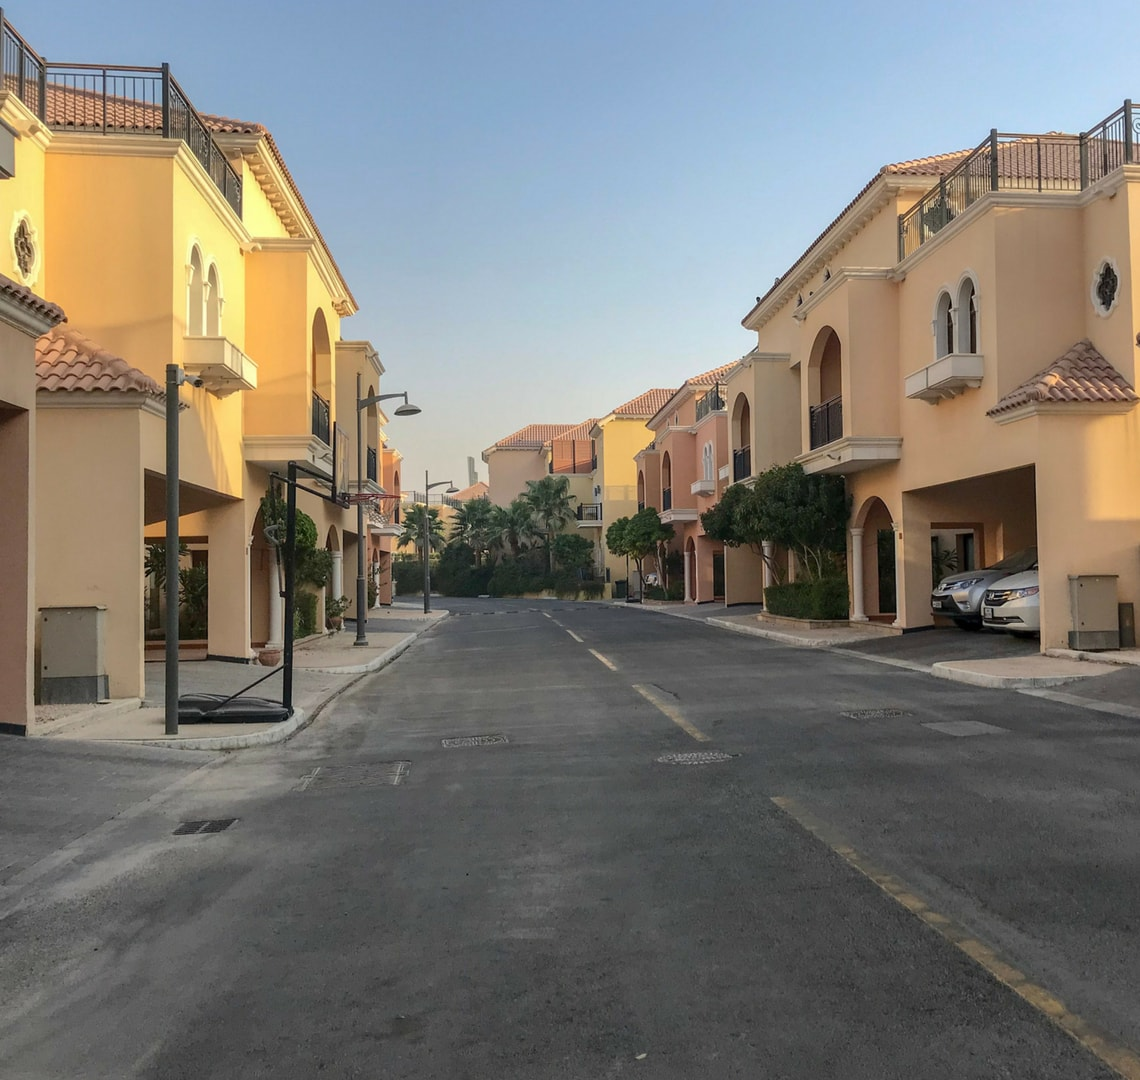 Our street with no people on it (or in the houses either!)